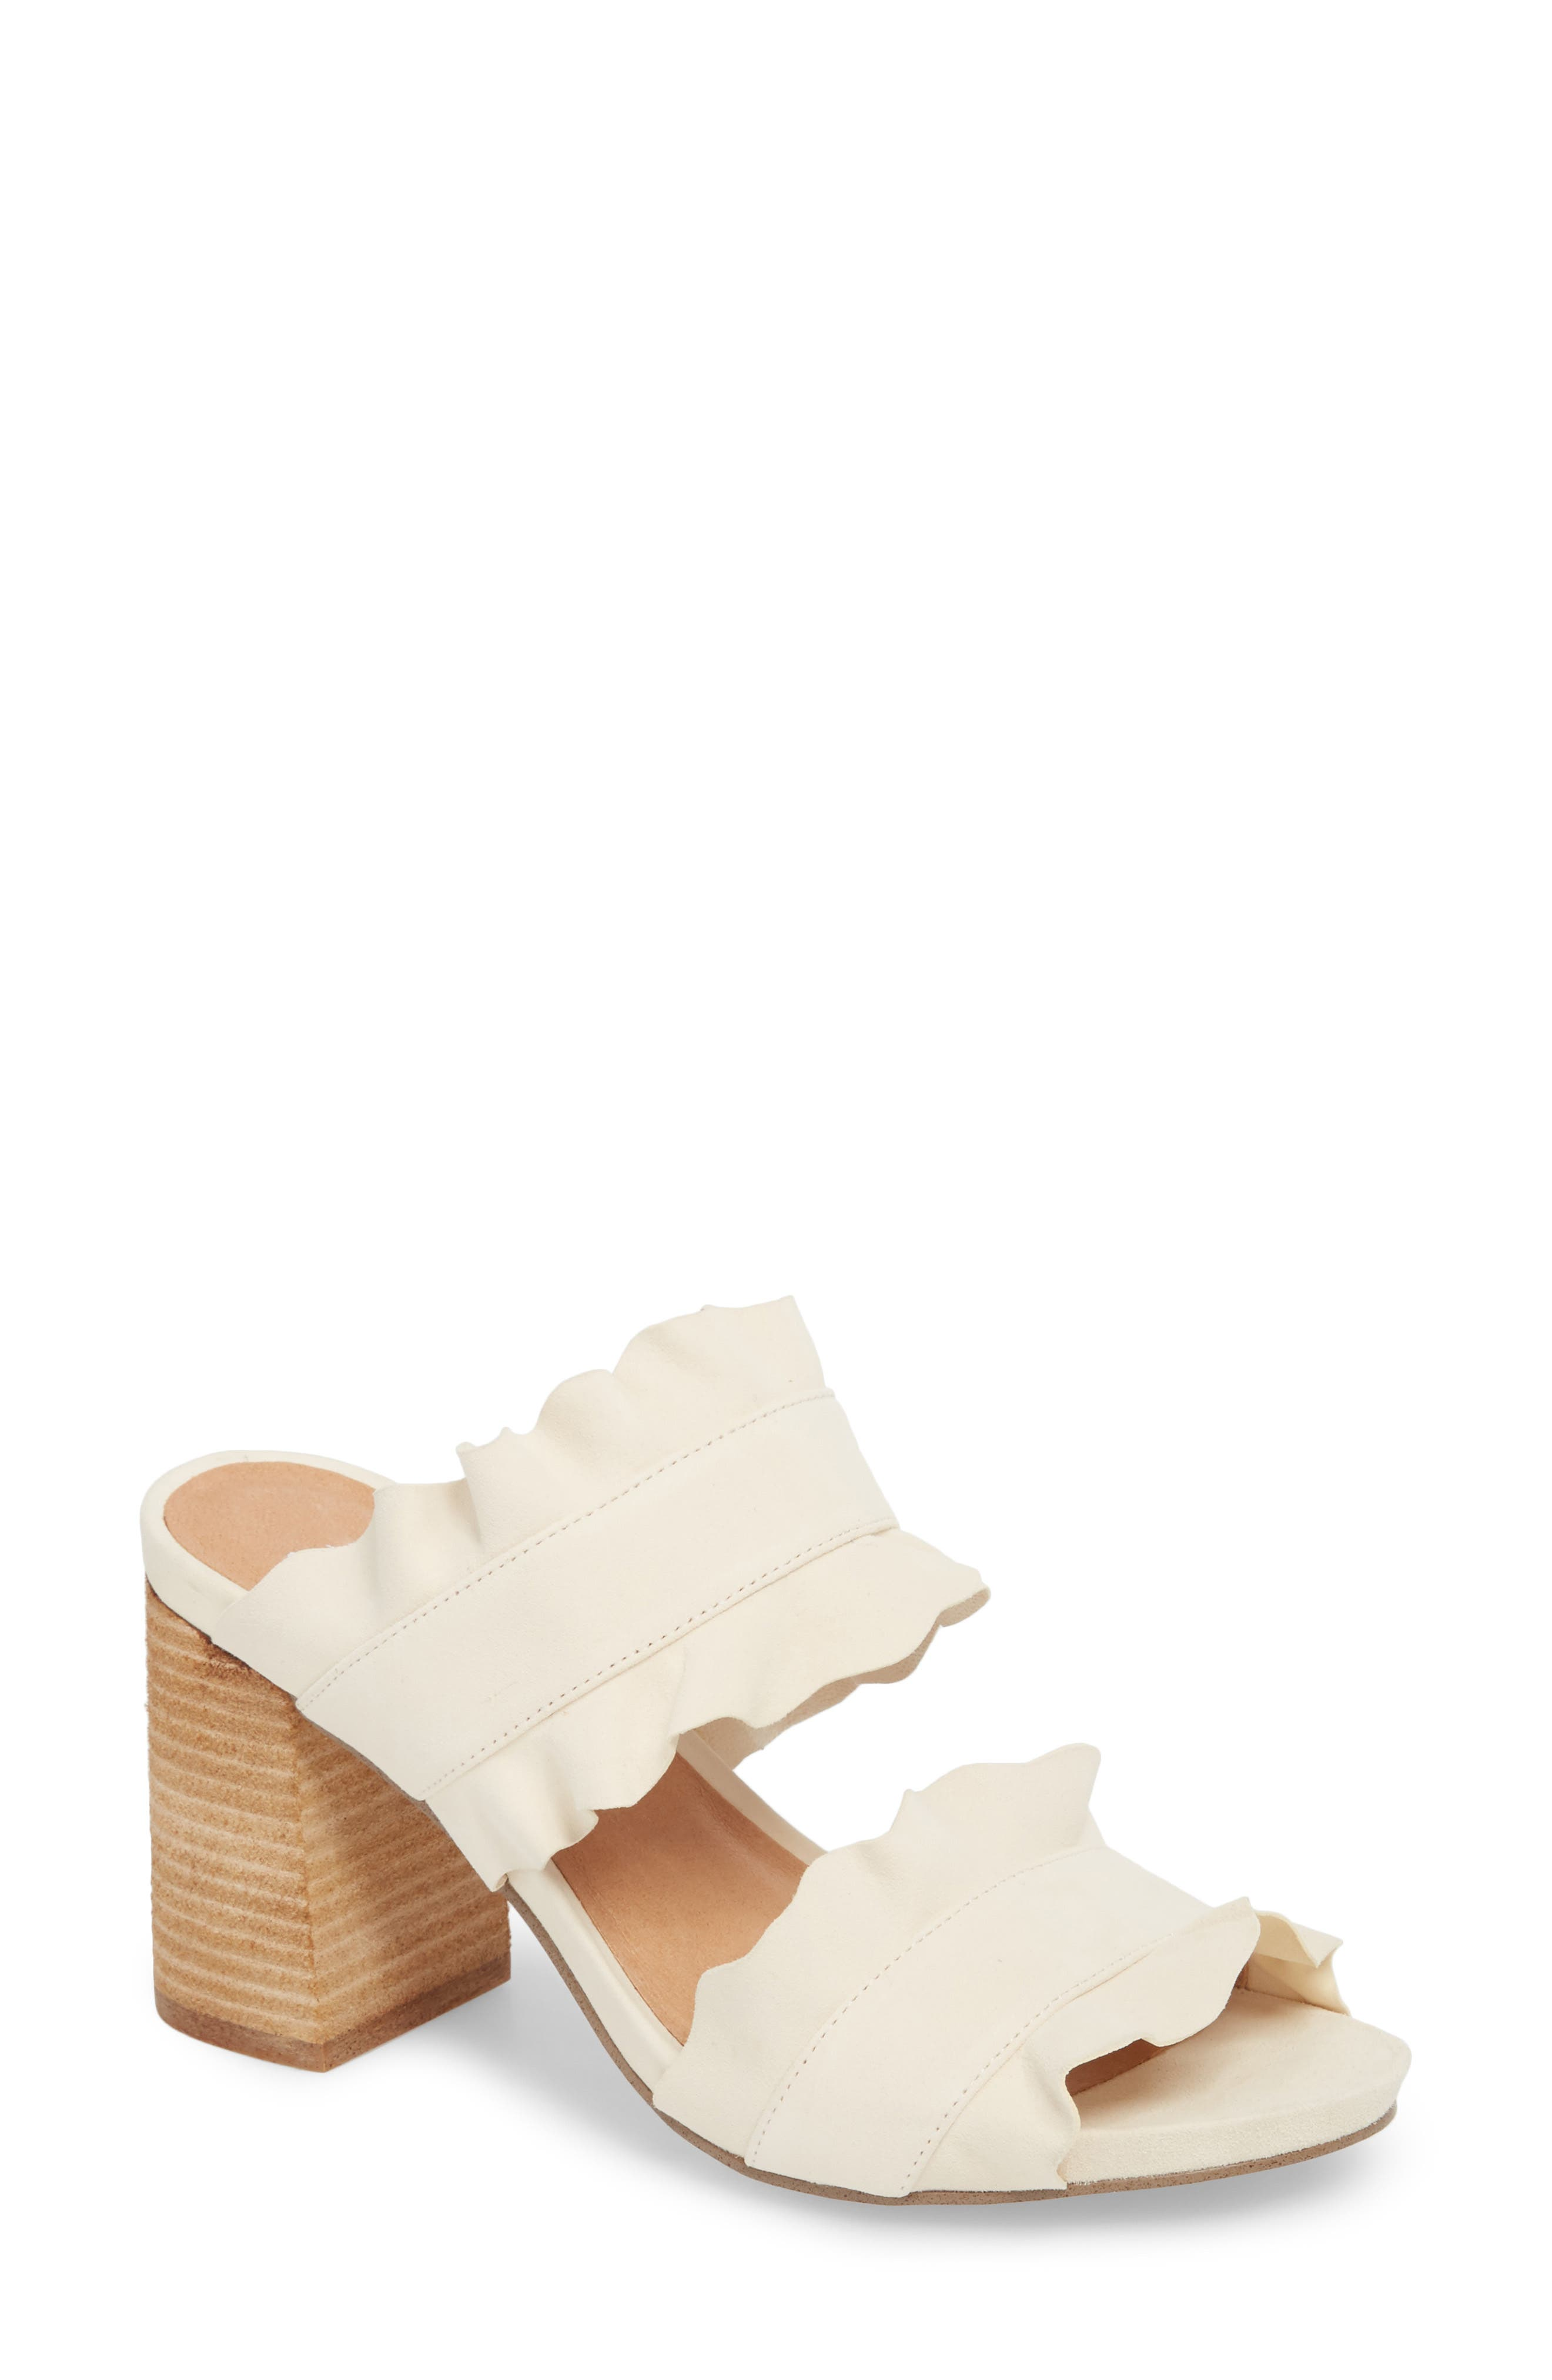 Rosie Ruffle Slide Sandal by Free People